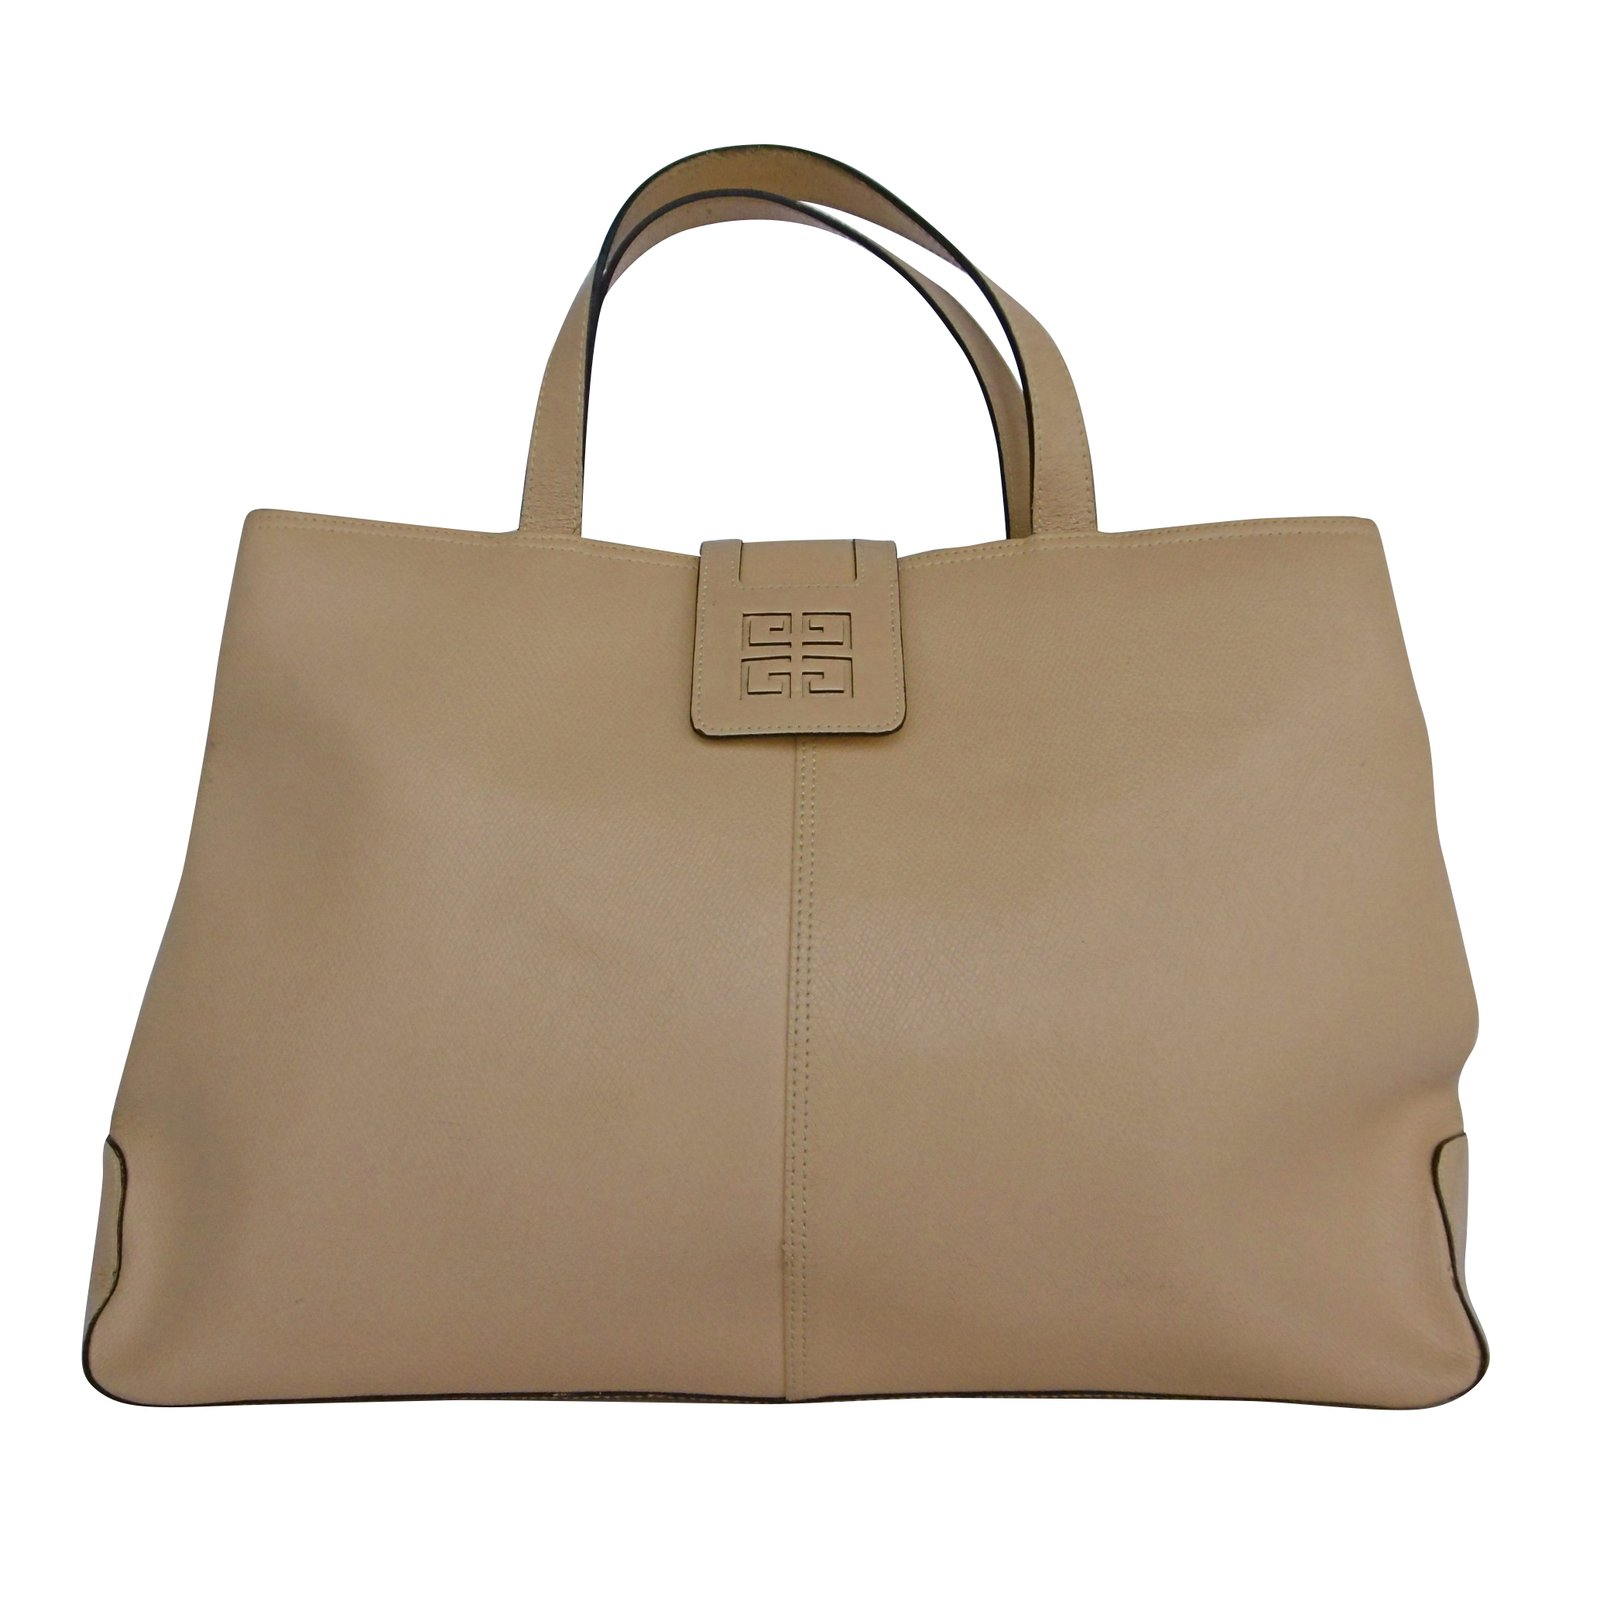 001af0ad37 Givenchy Givenchy Leather Tote Hand Bag Handbags Leather Beige ref.42568